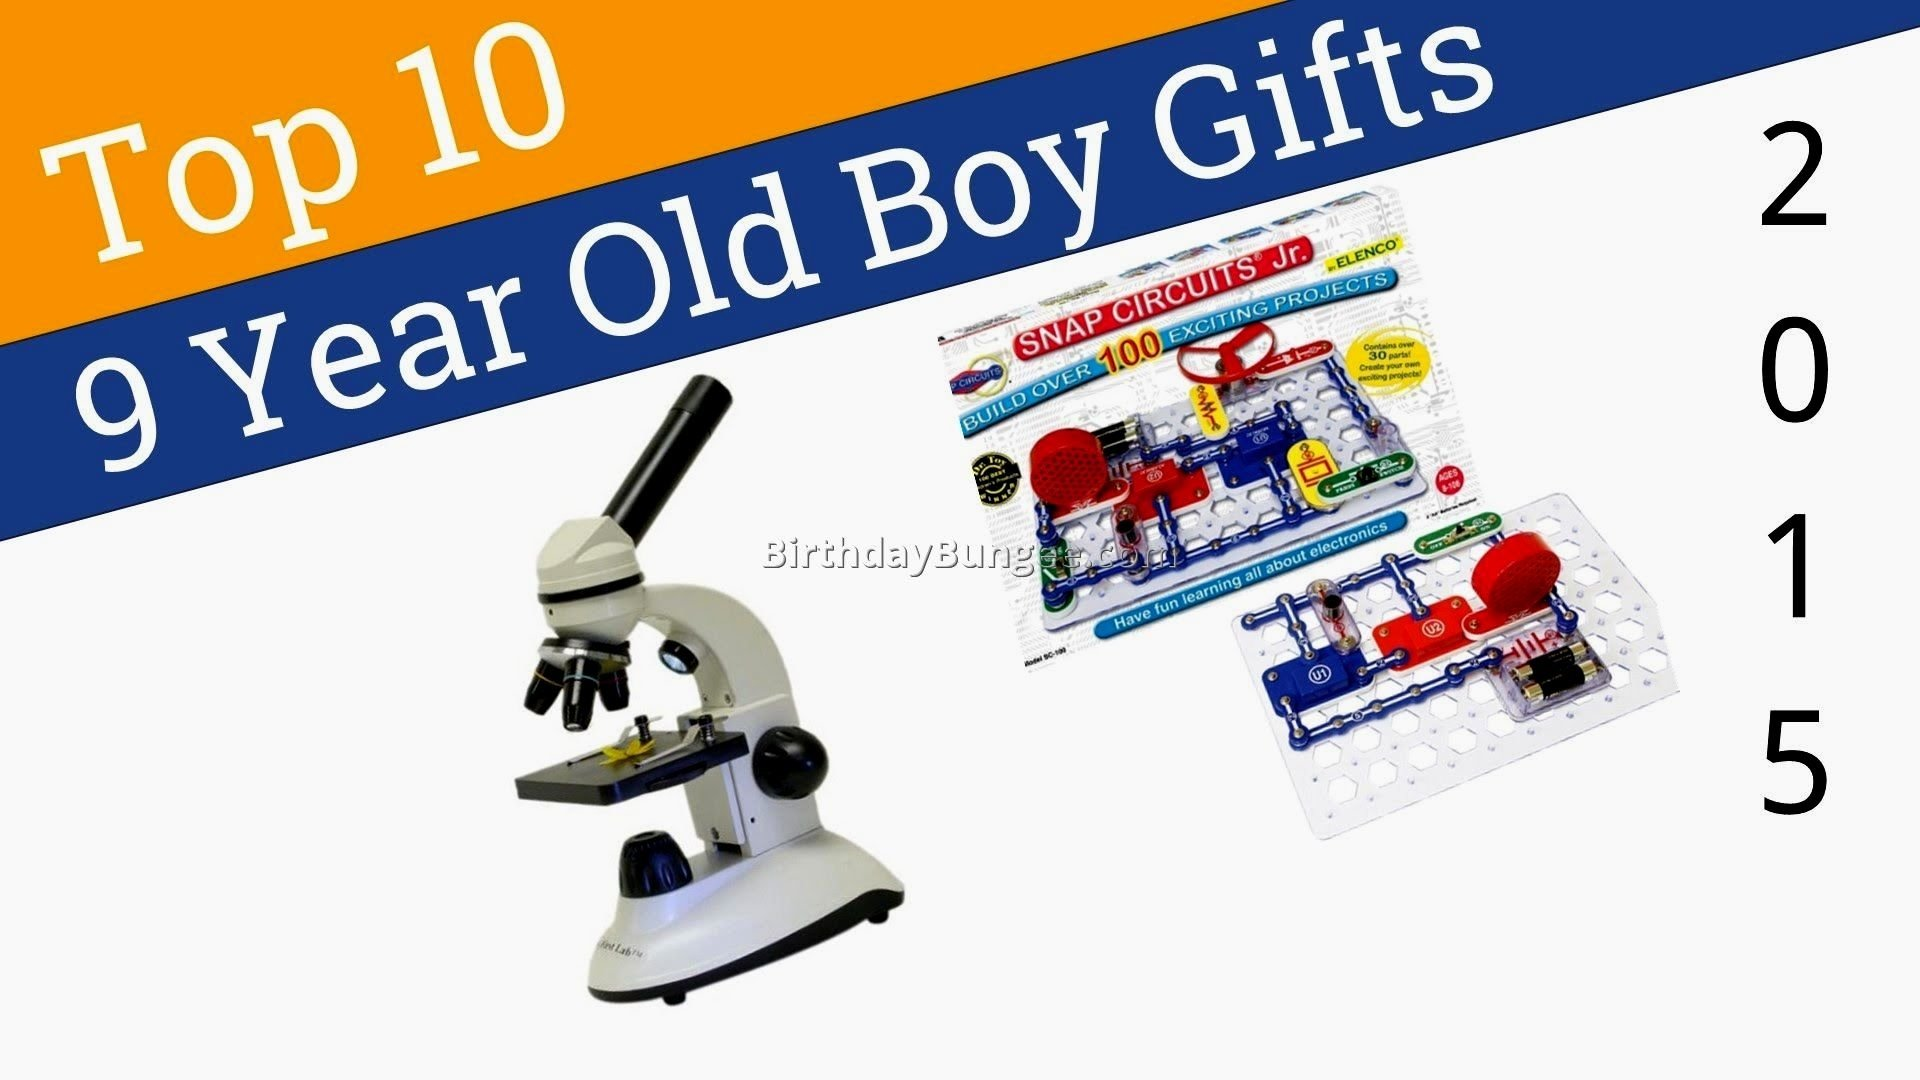 10 Fabulous Gift Ideas For 9 Year Old Boy fetching christmas ideas for 9 year old boy strikingly best gifts 2020